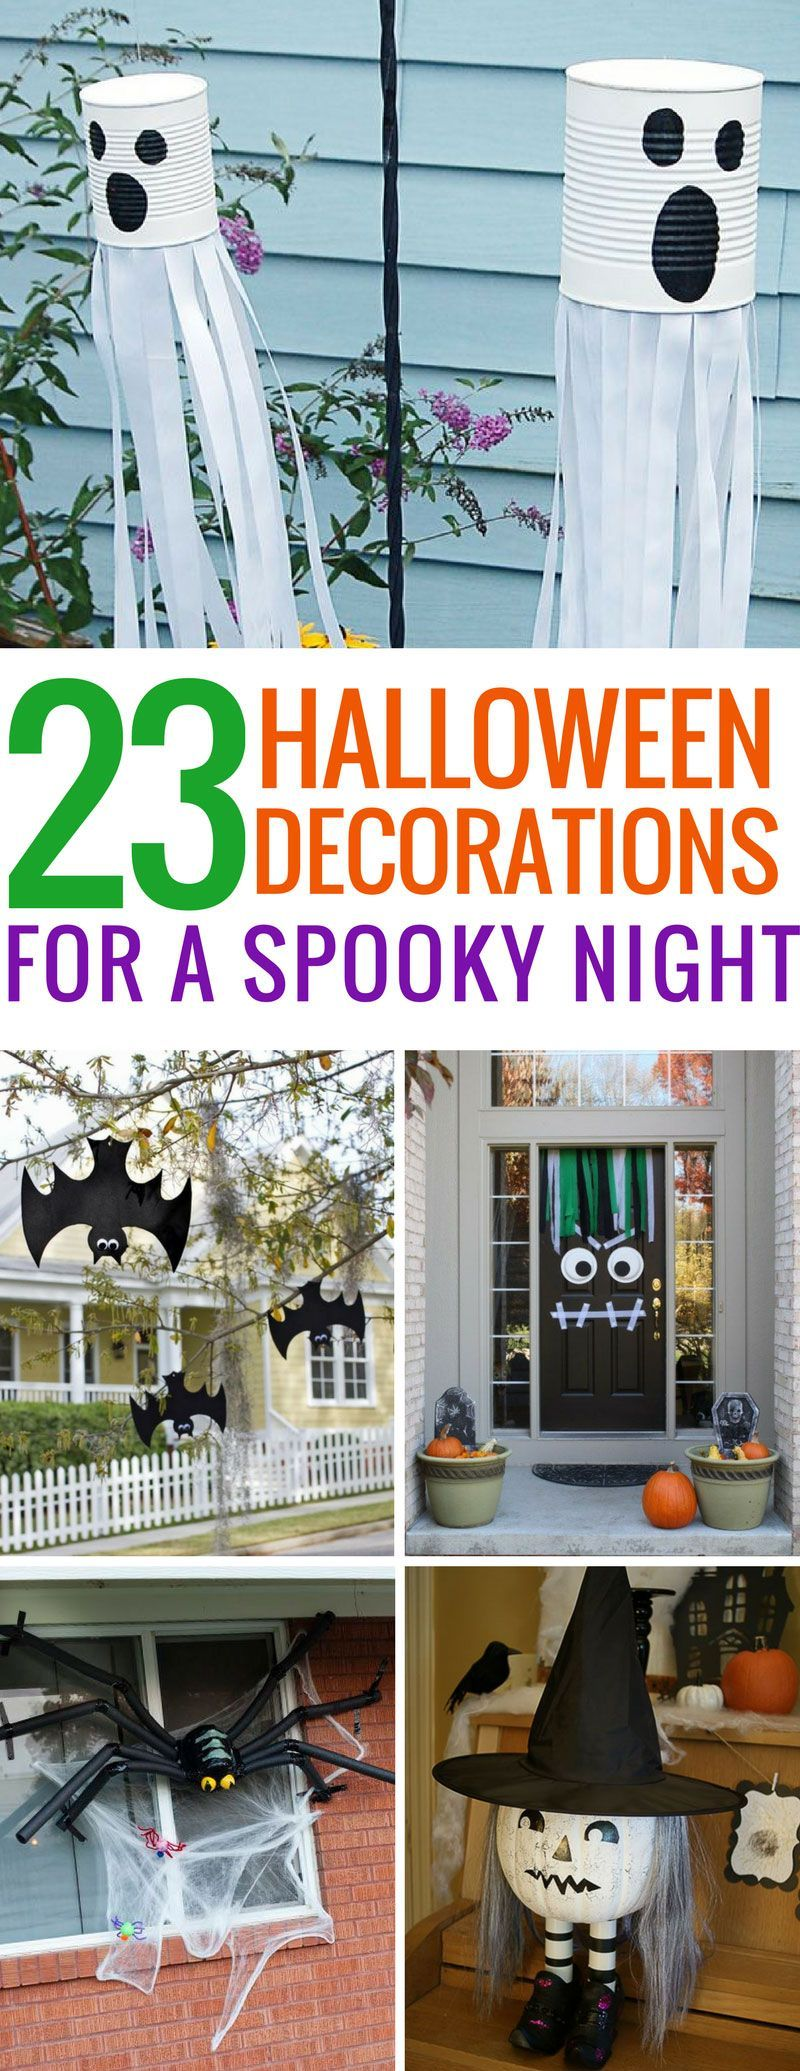 Loving these homemade Halloween decorations - the kids will have a - Homemade Halloween Decorations